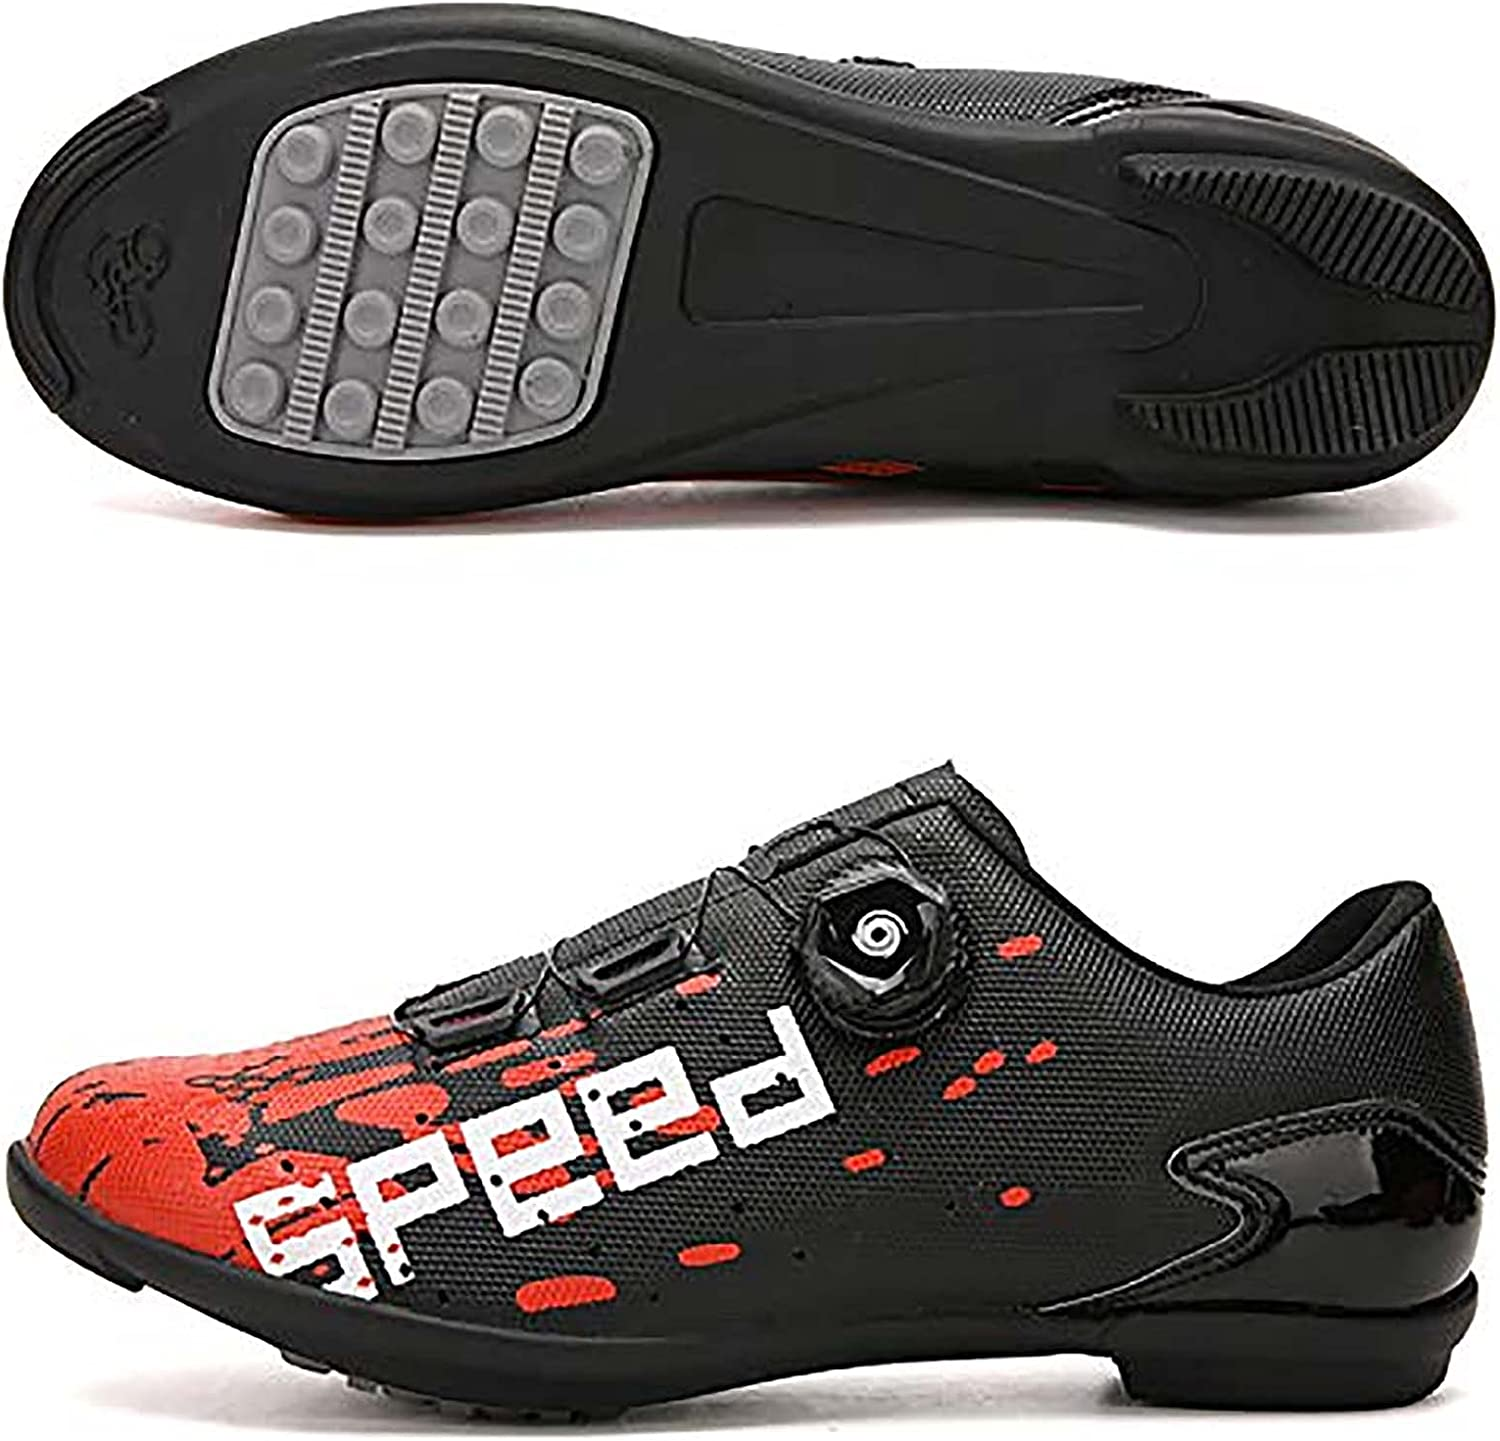 Men Lockless Max 90% All stores are sold OFF Cycling Shoes Lightweight Bicycle Sh MTB Breathable